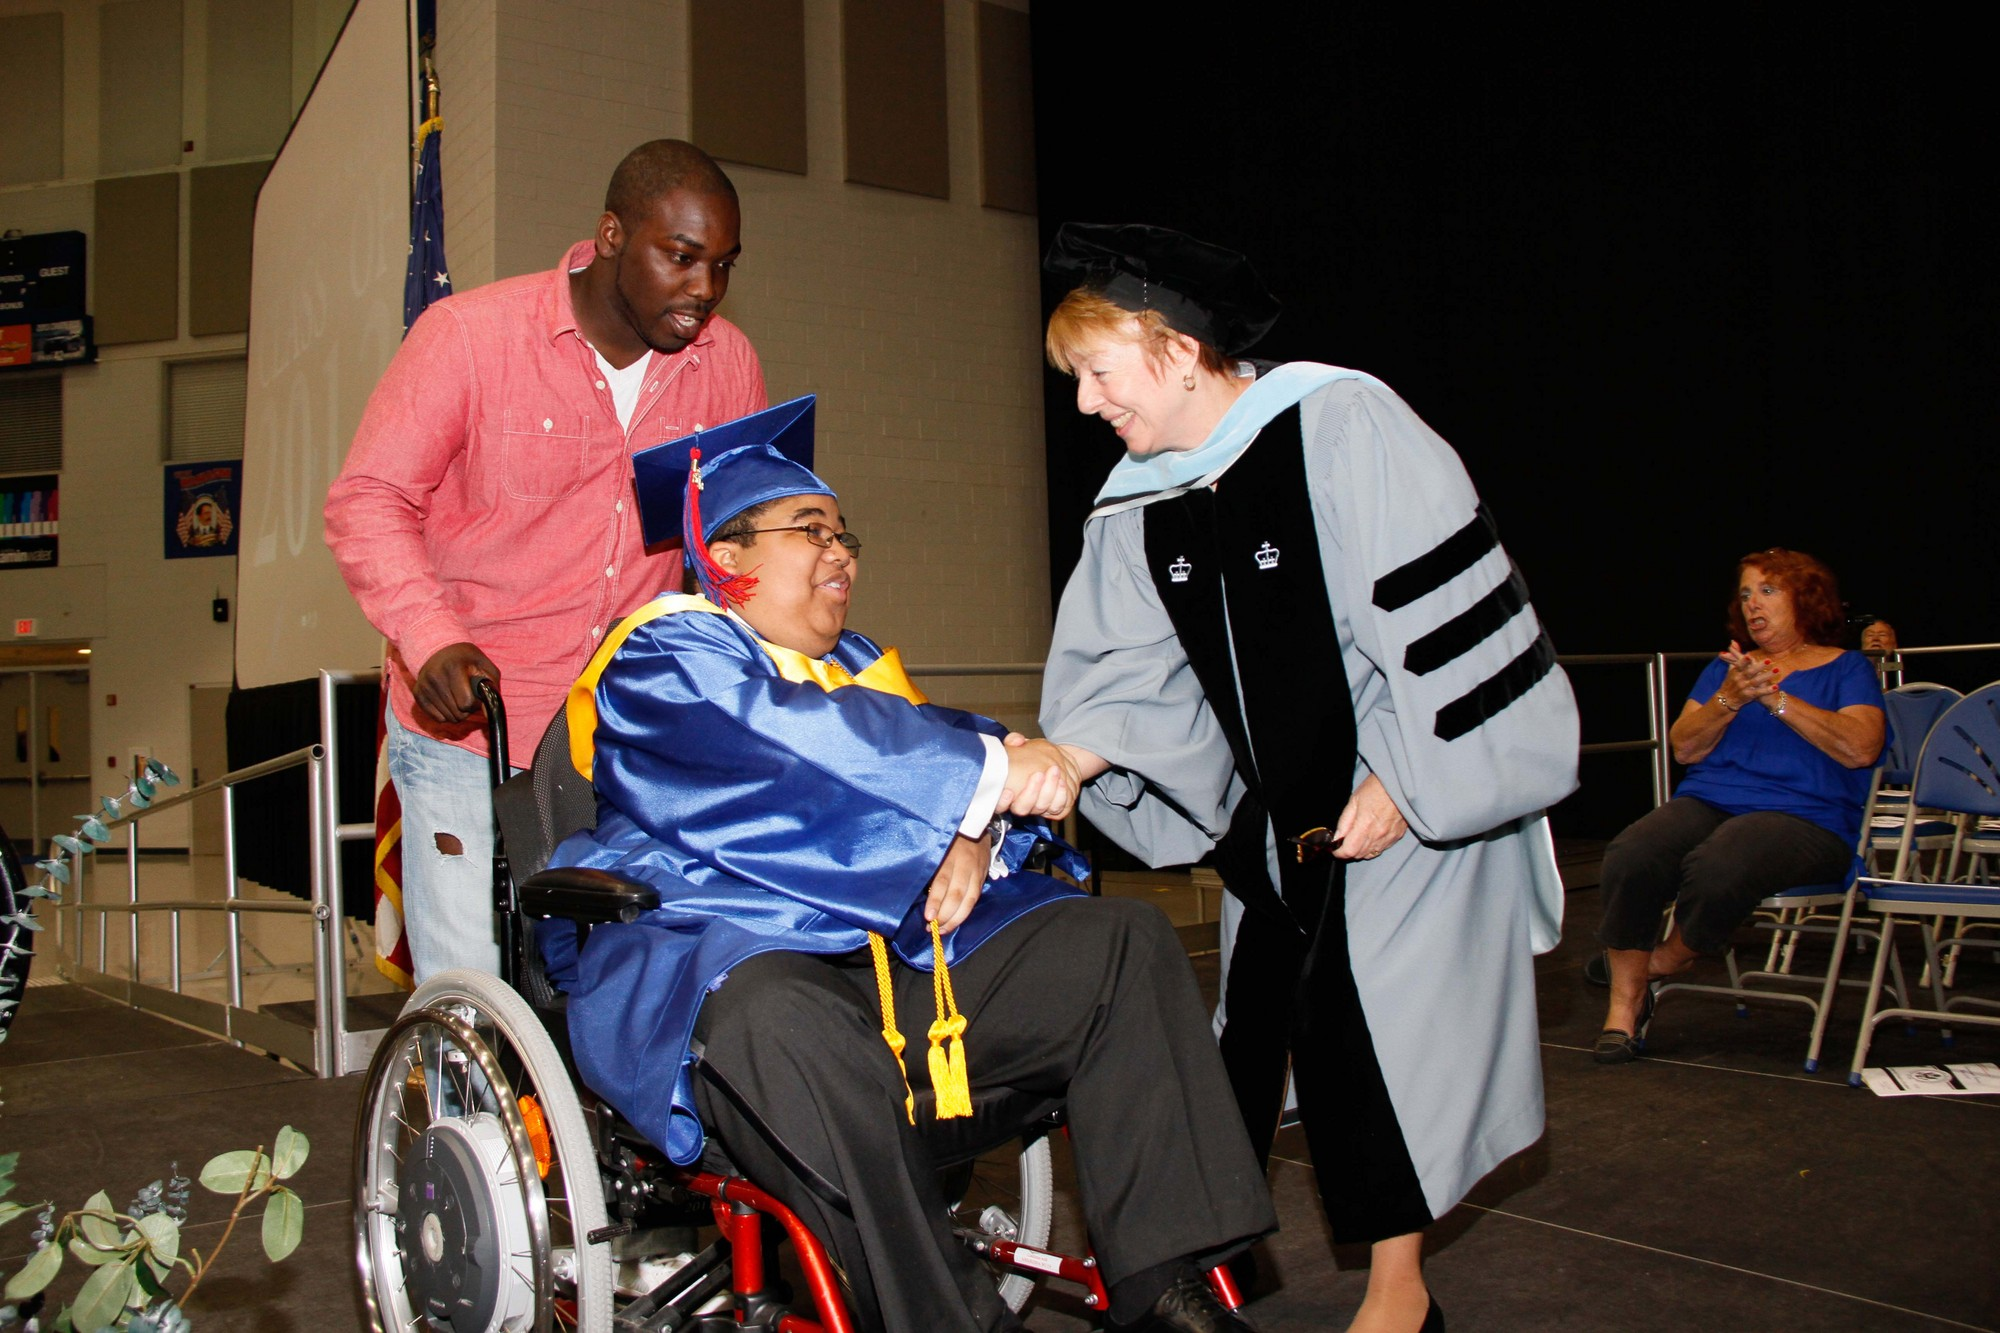 was awarded his diploma by South Side Principal Dr. Carol Burris.